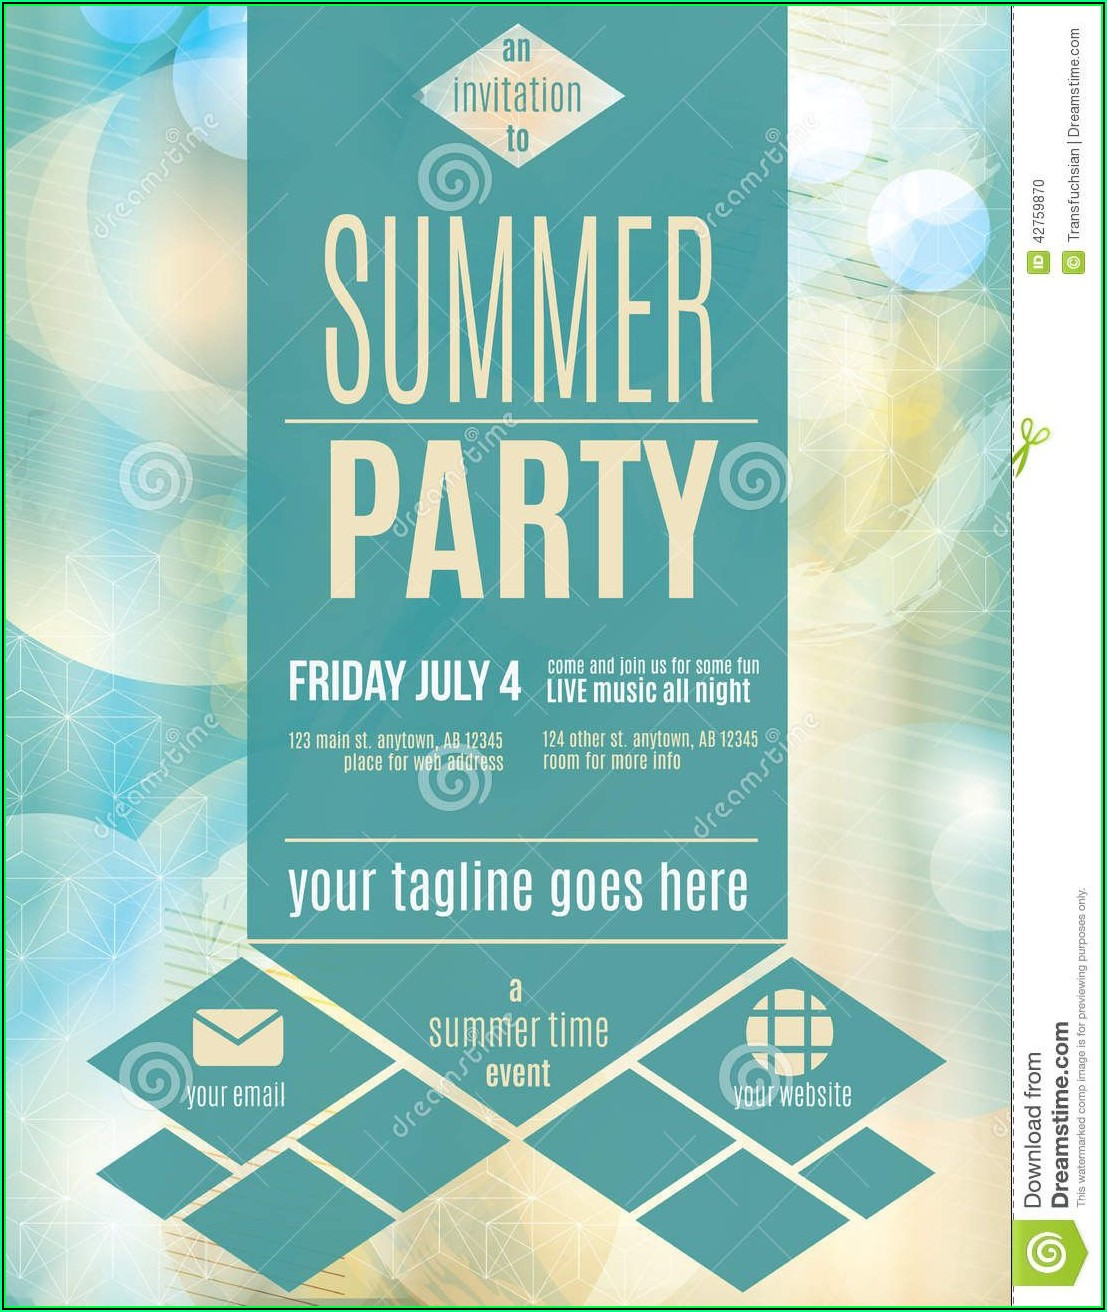 Party Invitation Flyer Template Free